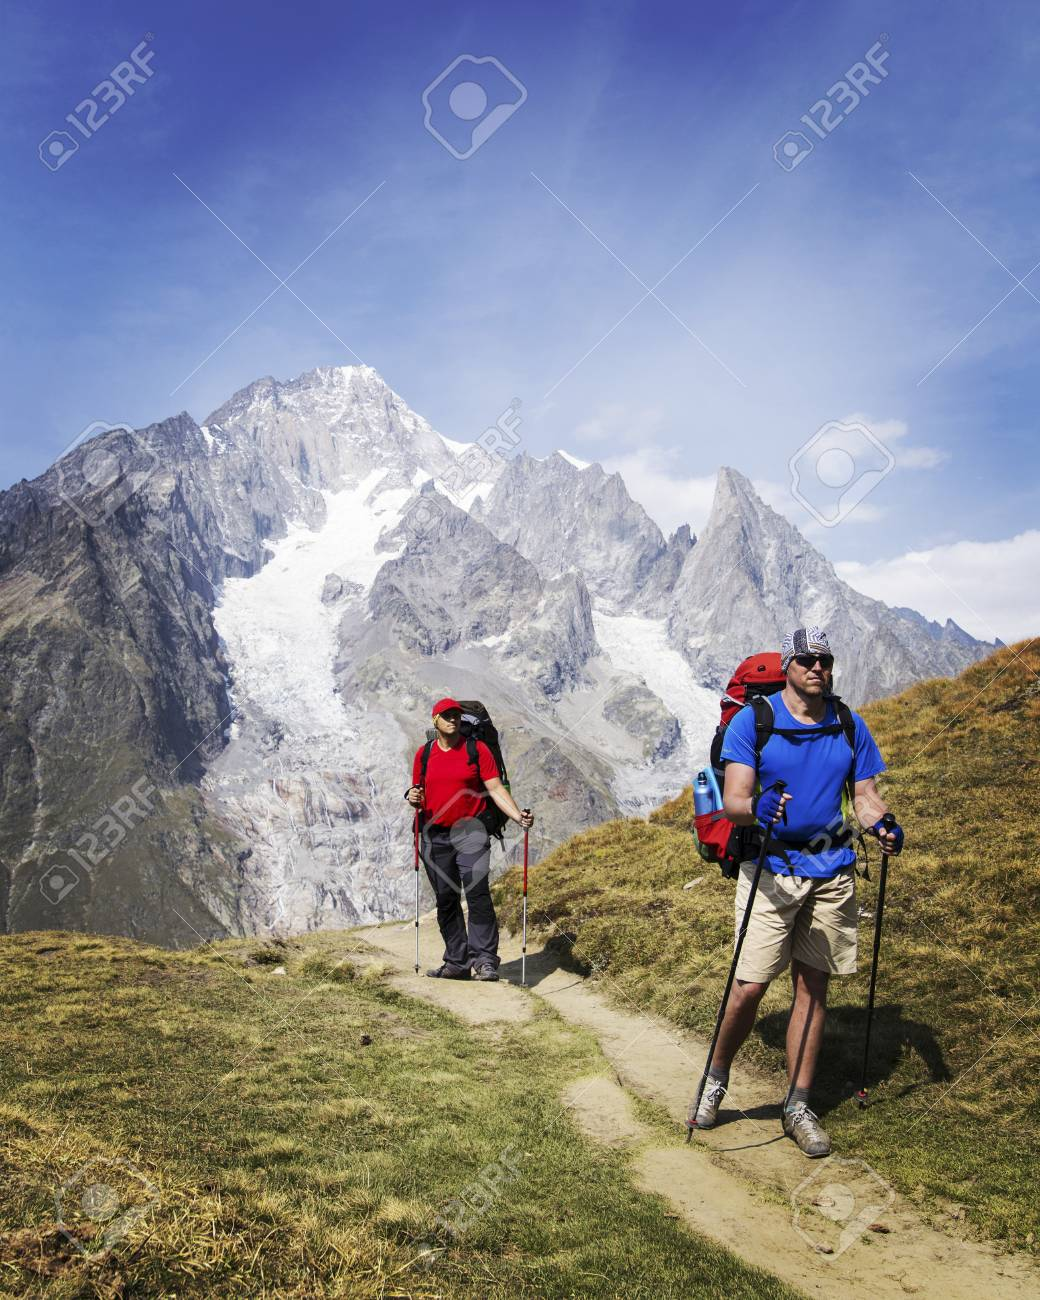 The Tour du Mont Blanc is a unique trek of approximately 200km around Mont Blanc that can be completed in between 7 and 10 days passing through Italy, Switzerland and France. - 102478933